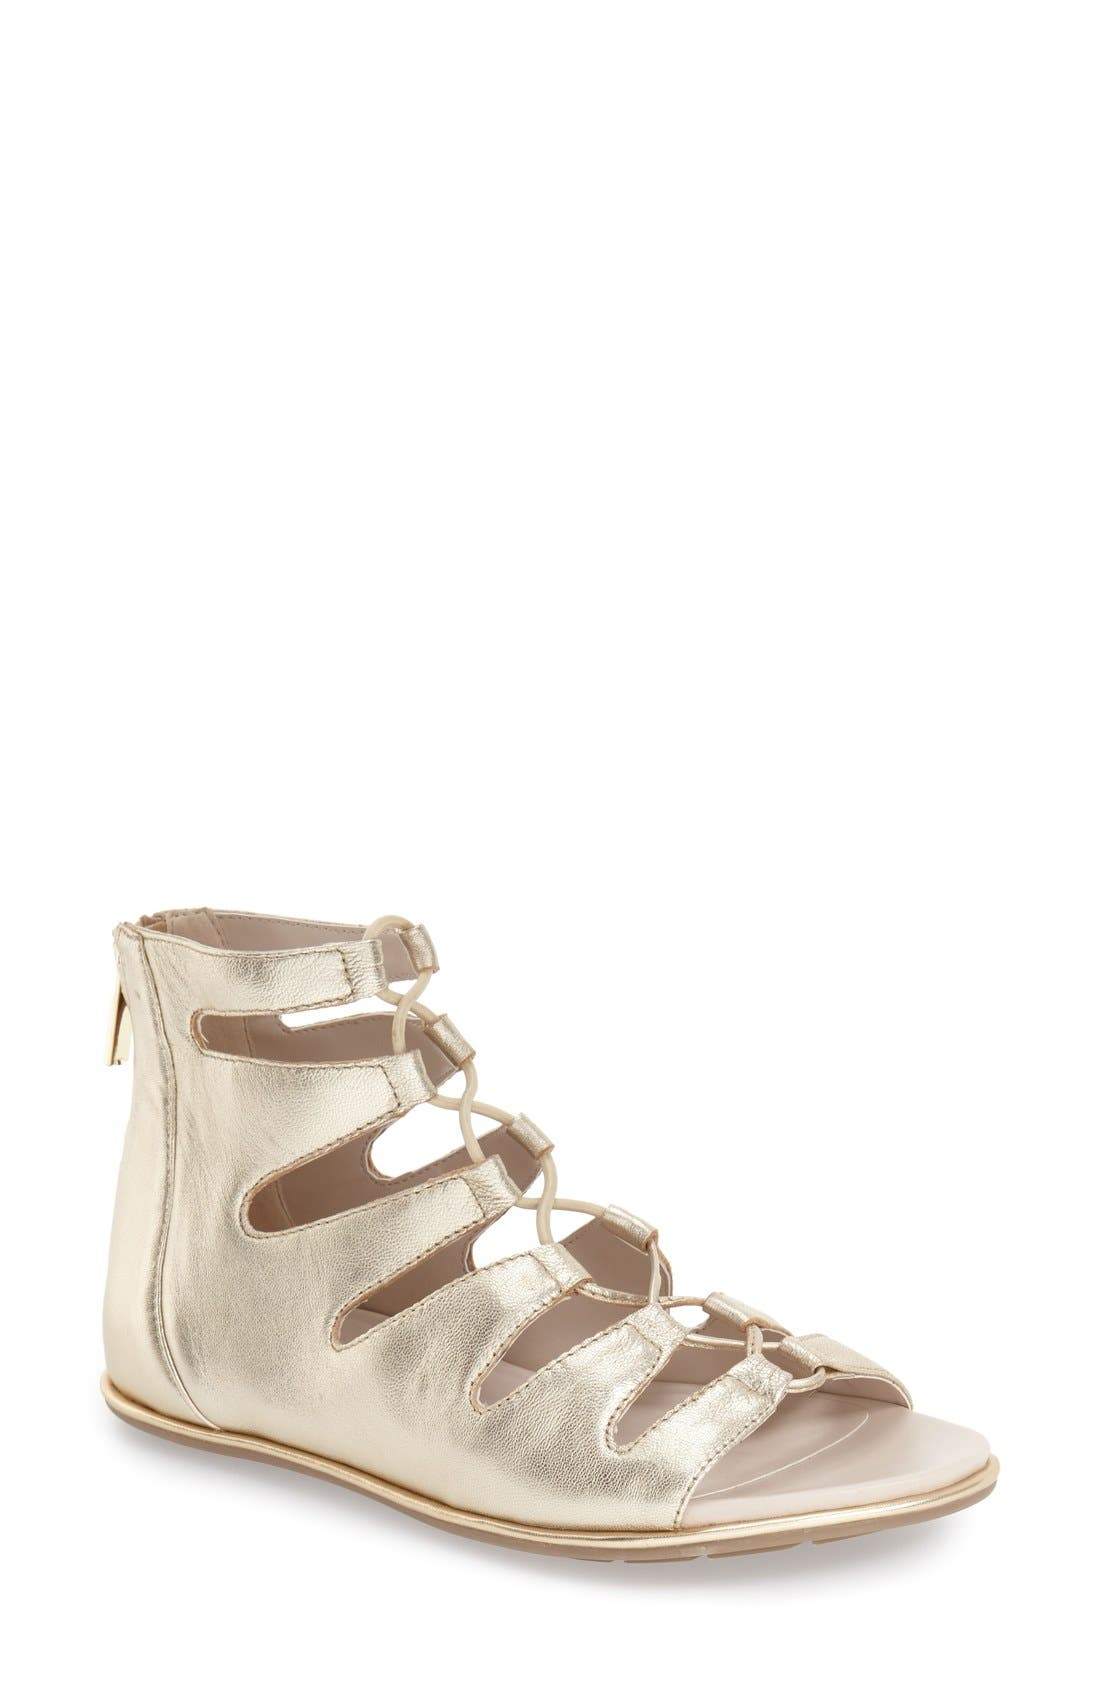 Main Image - Kenneth Cole New York 'Ollie' Cage Sandal (Women)